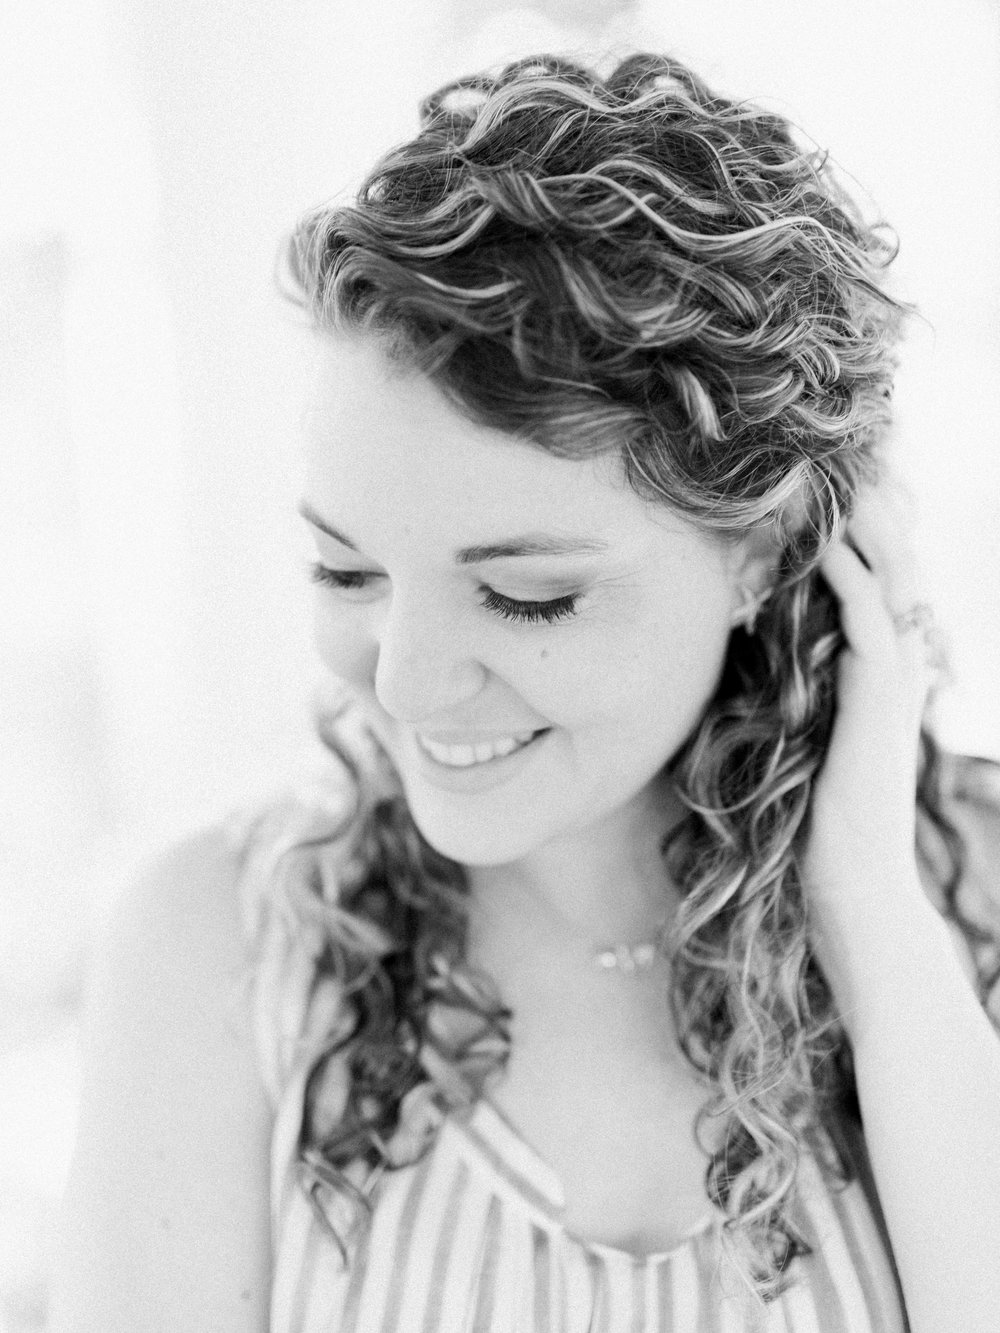 Ashley Eiban is a Wedding & Portrait Photographer based in Central Virginia. Serving the Lynchburg, Charlottesville, Richmond, and surrounding areas. Available for travel world-wide.  Ashley is passionate about cultivating genuine relationships built on mutual understanding, trust and lasting friendship.    Currently booking a limited number of wedding and portrait sessions for 2018.   Contact Ashley today  for additional information!